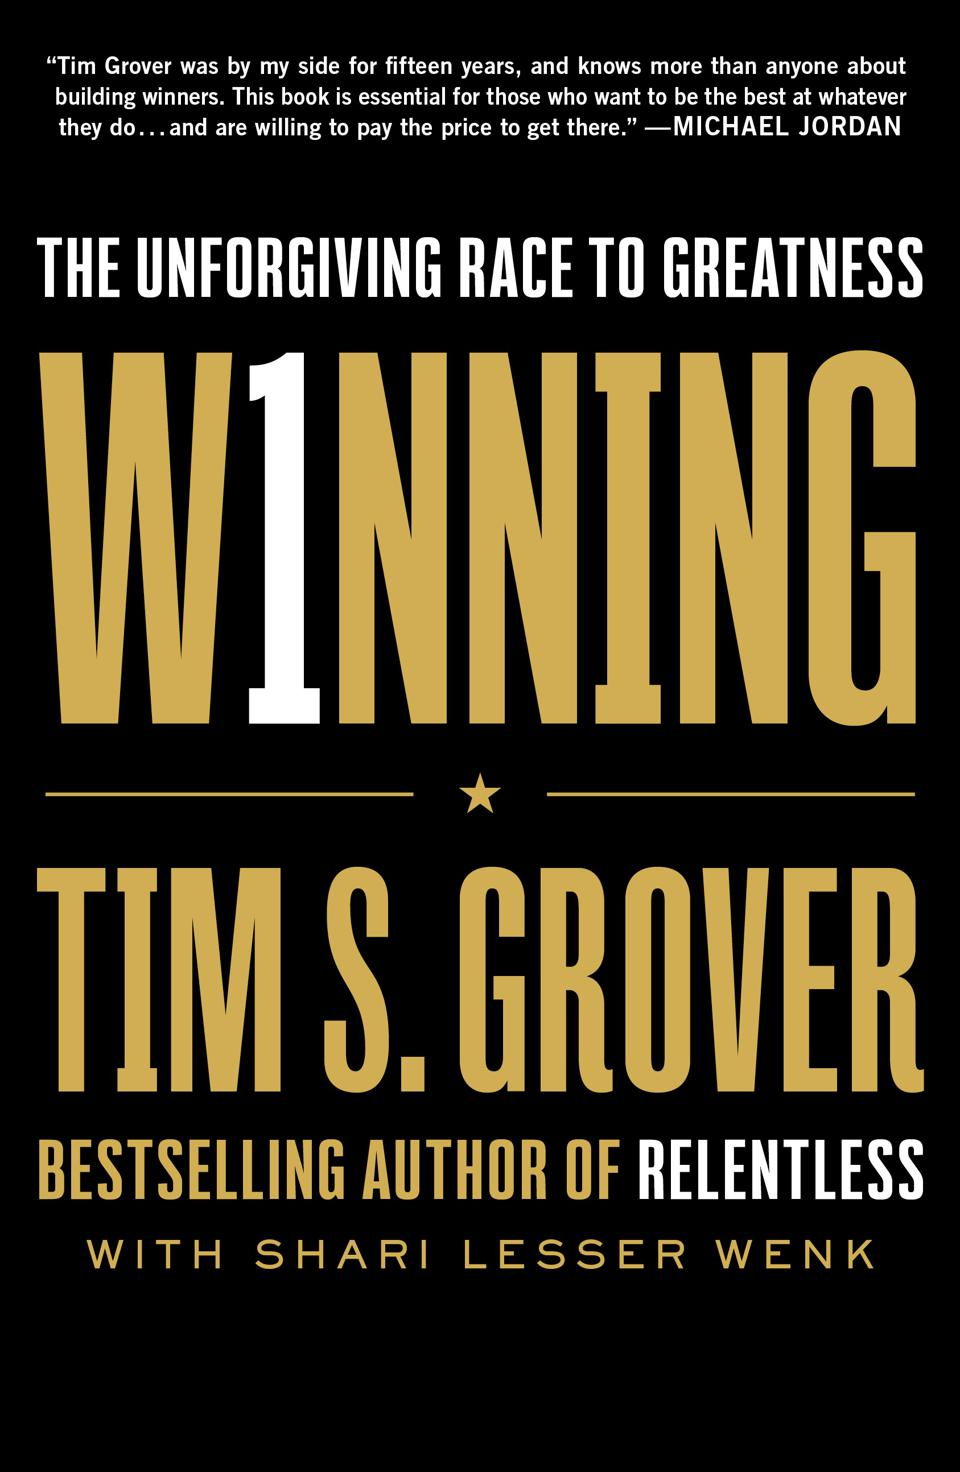 Winning shares the stories of NBA legends and their road to success.